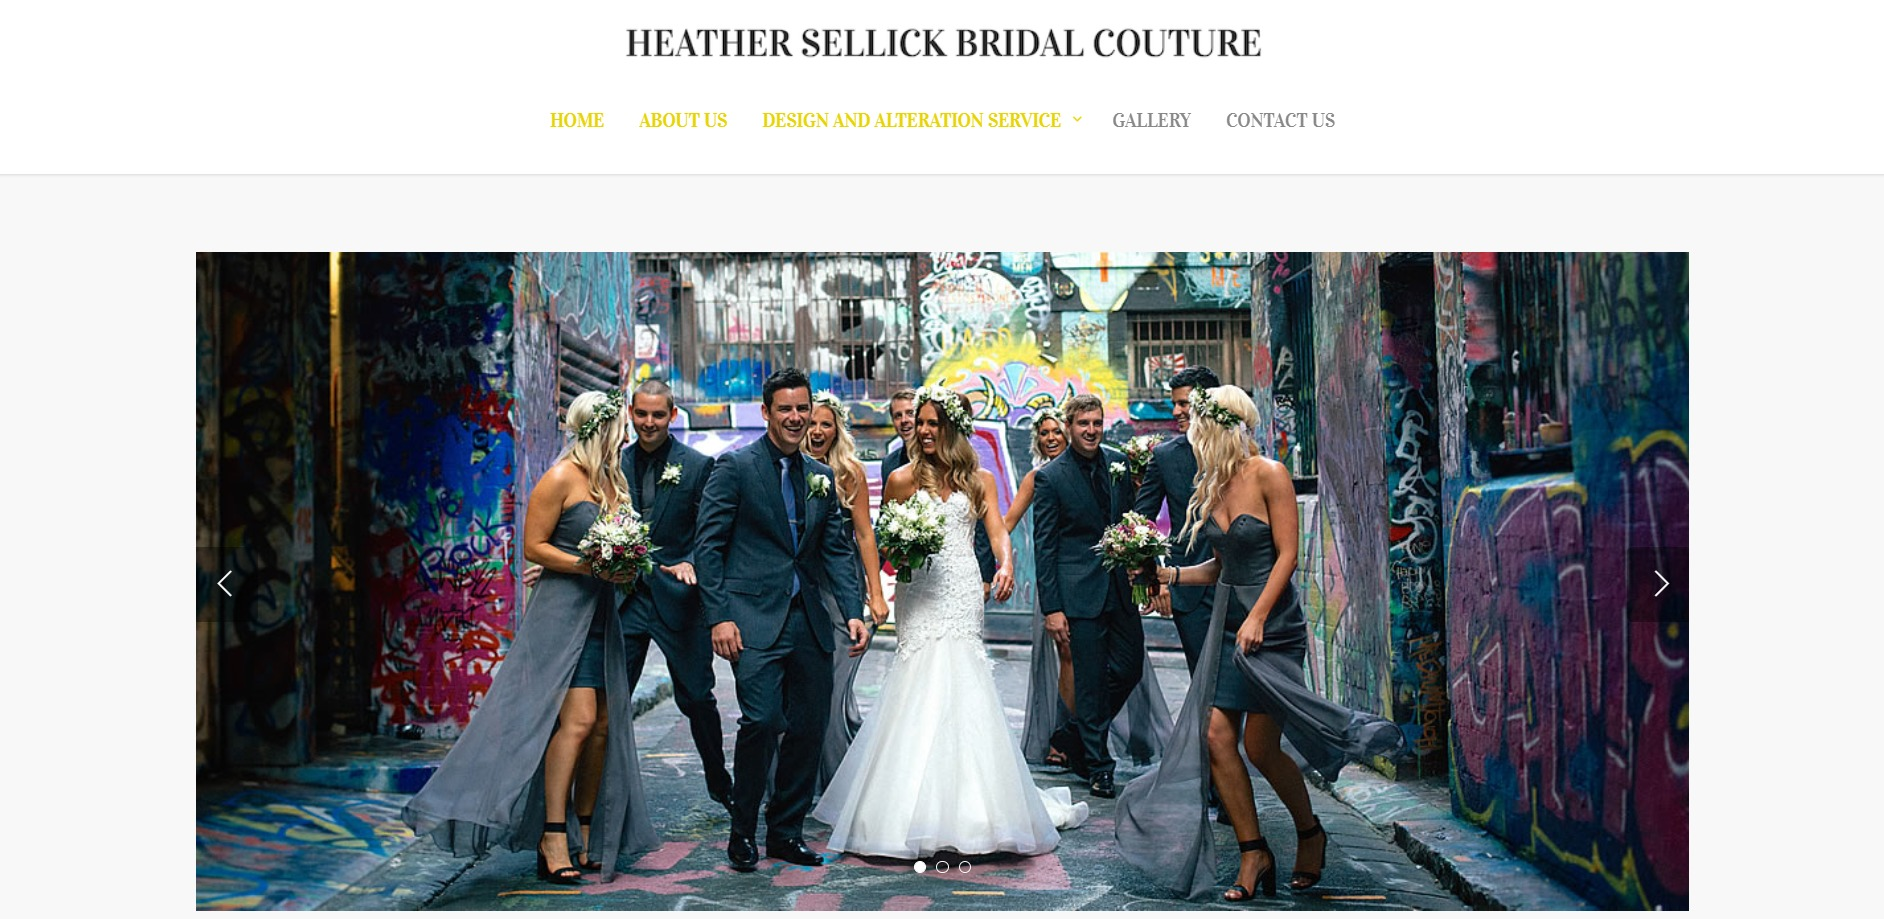 Heather Sellick Bridal